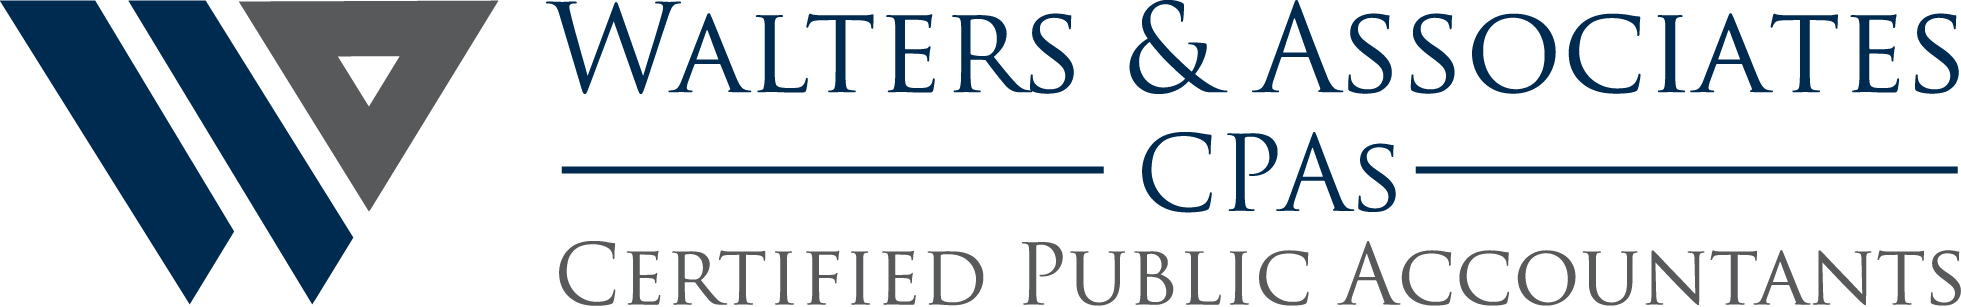 Walters and Associates CPA